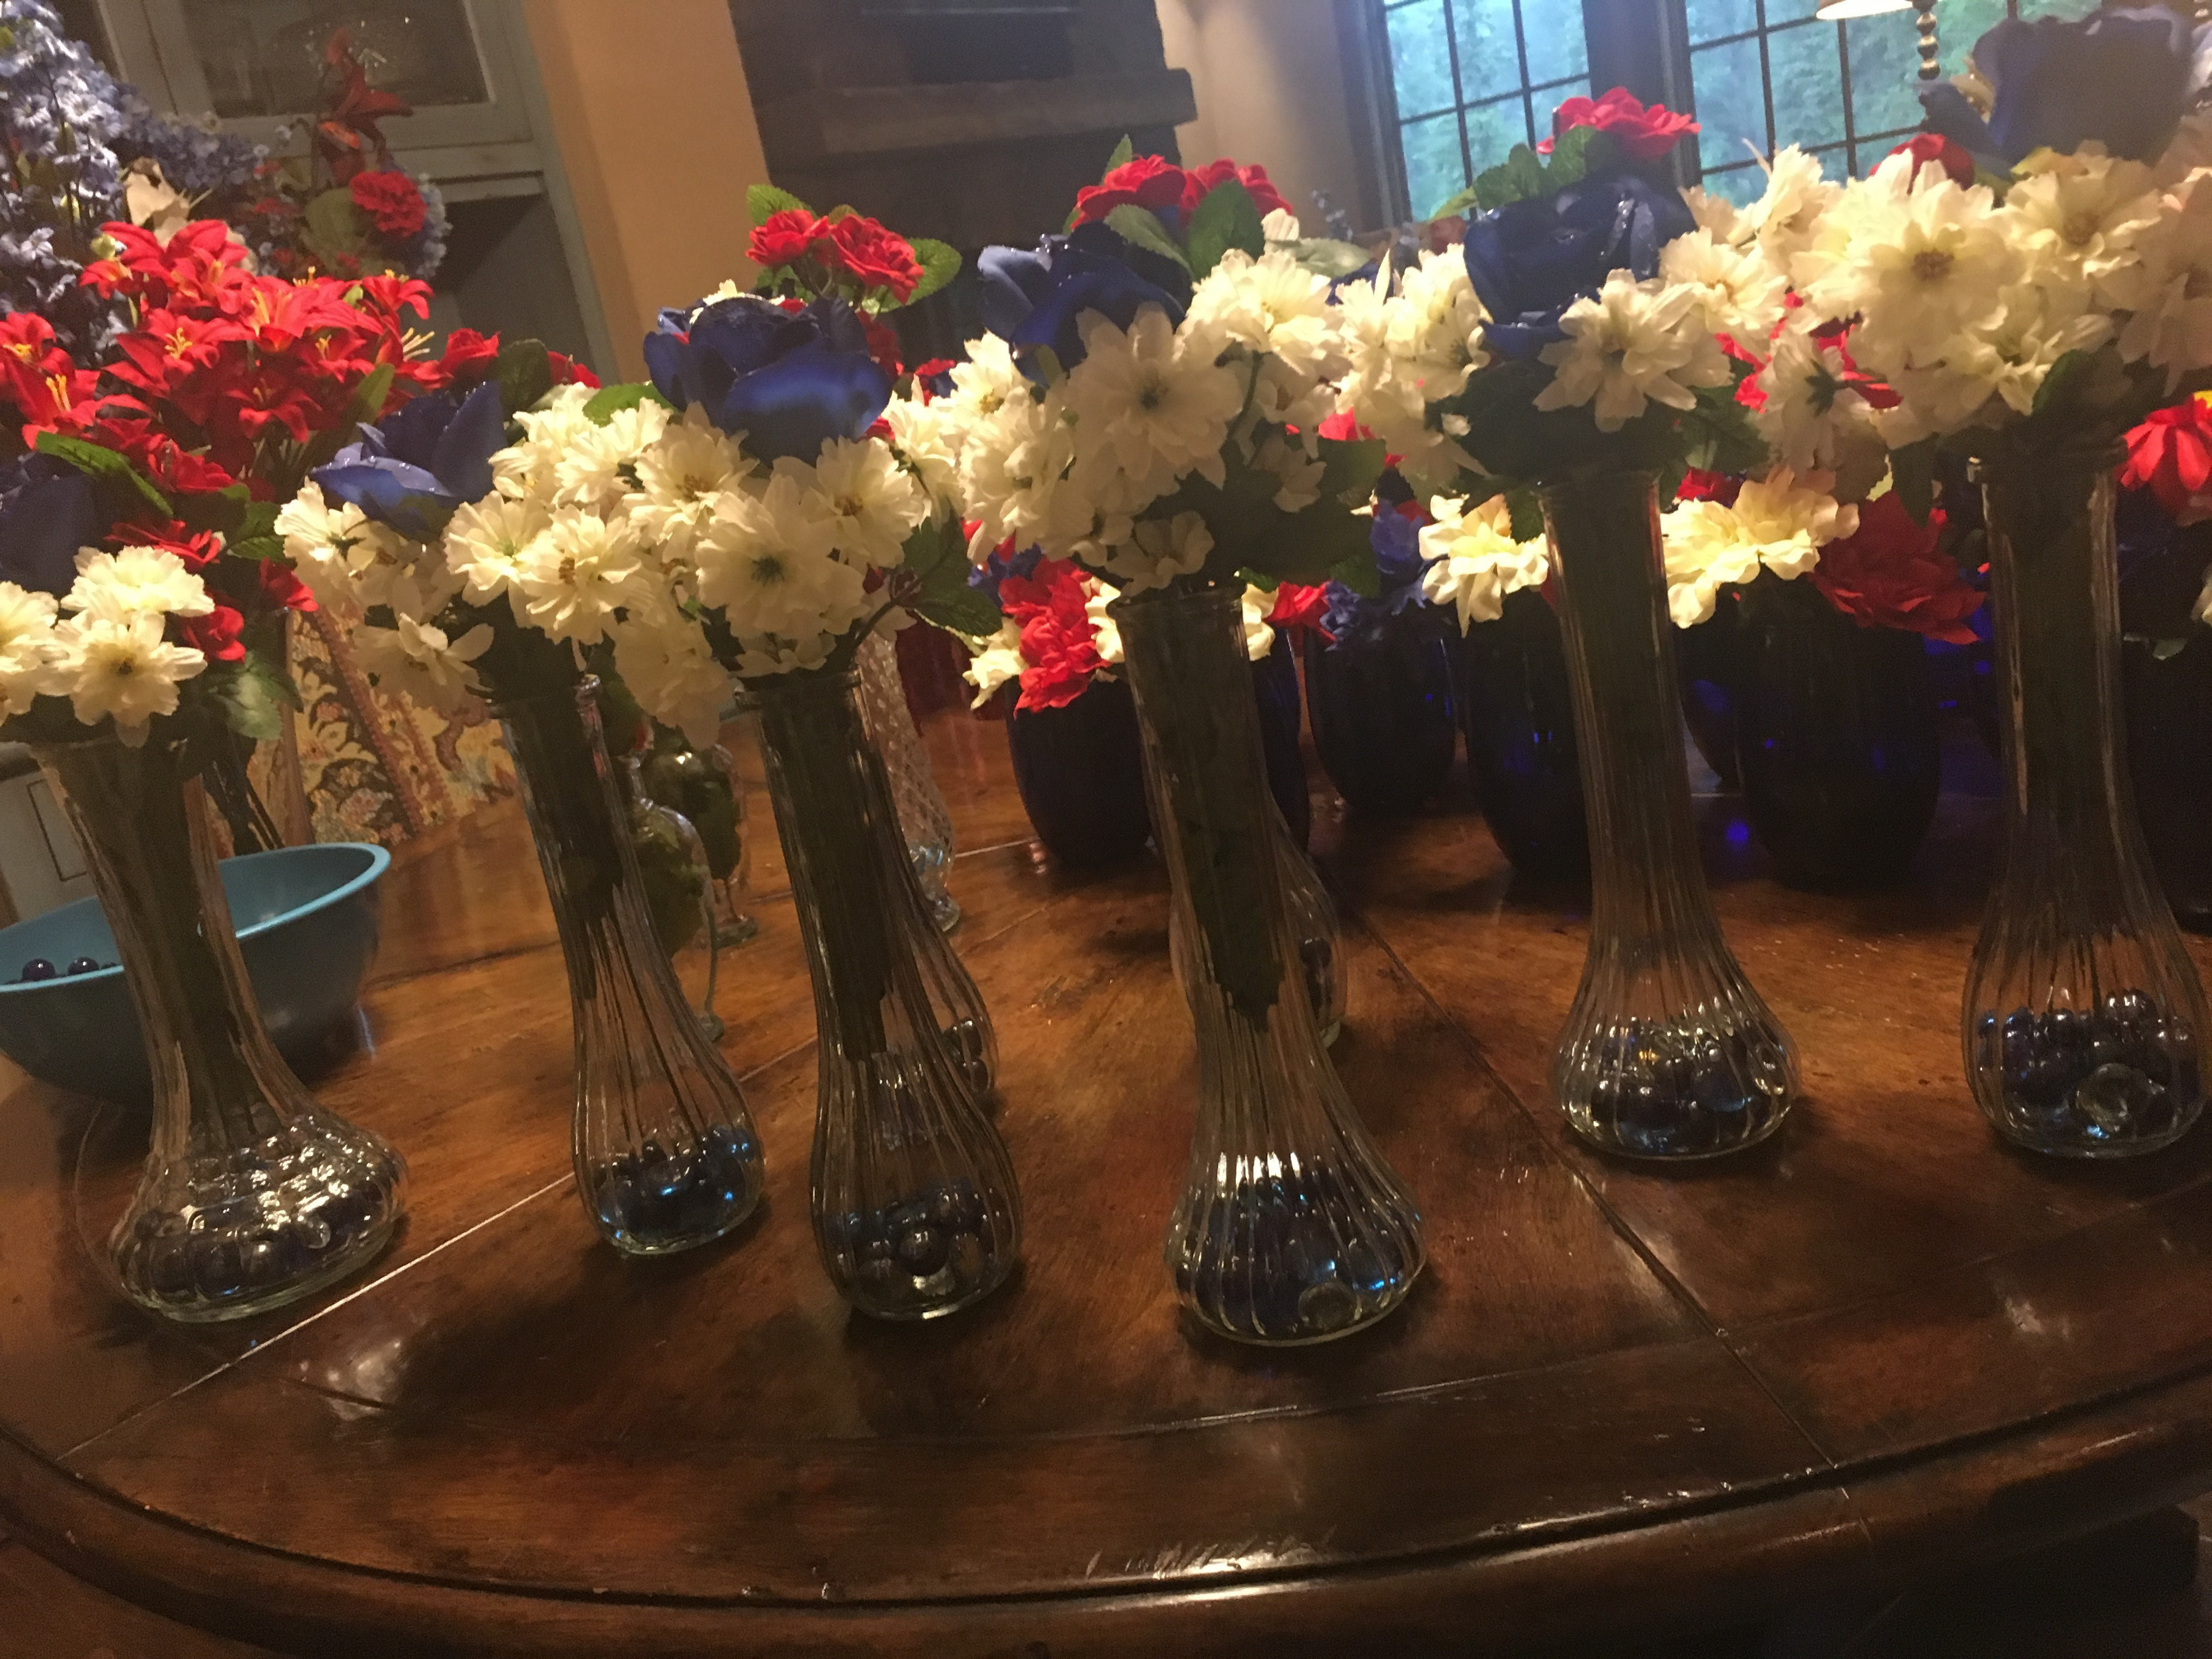 large martini glass vase of michaels glass vase photograph flower decoration for home throughout michaels glass vase pics dollar tree wedding decorations awesome h vases dollar vase i 0d of